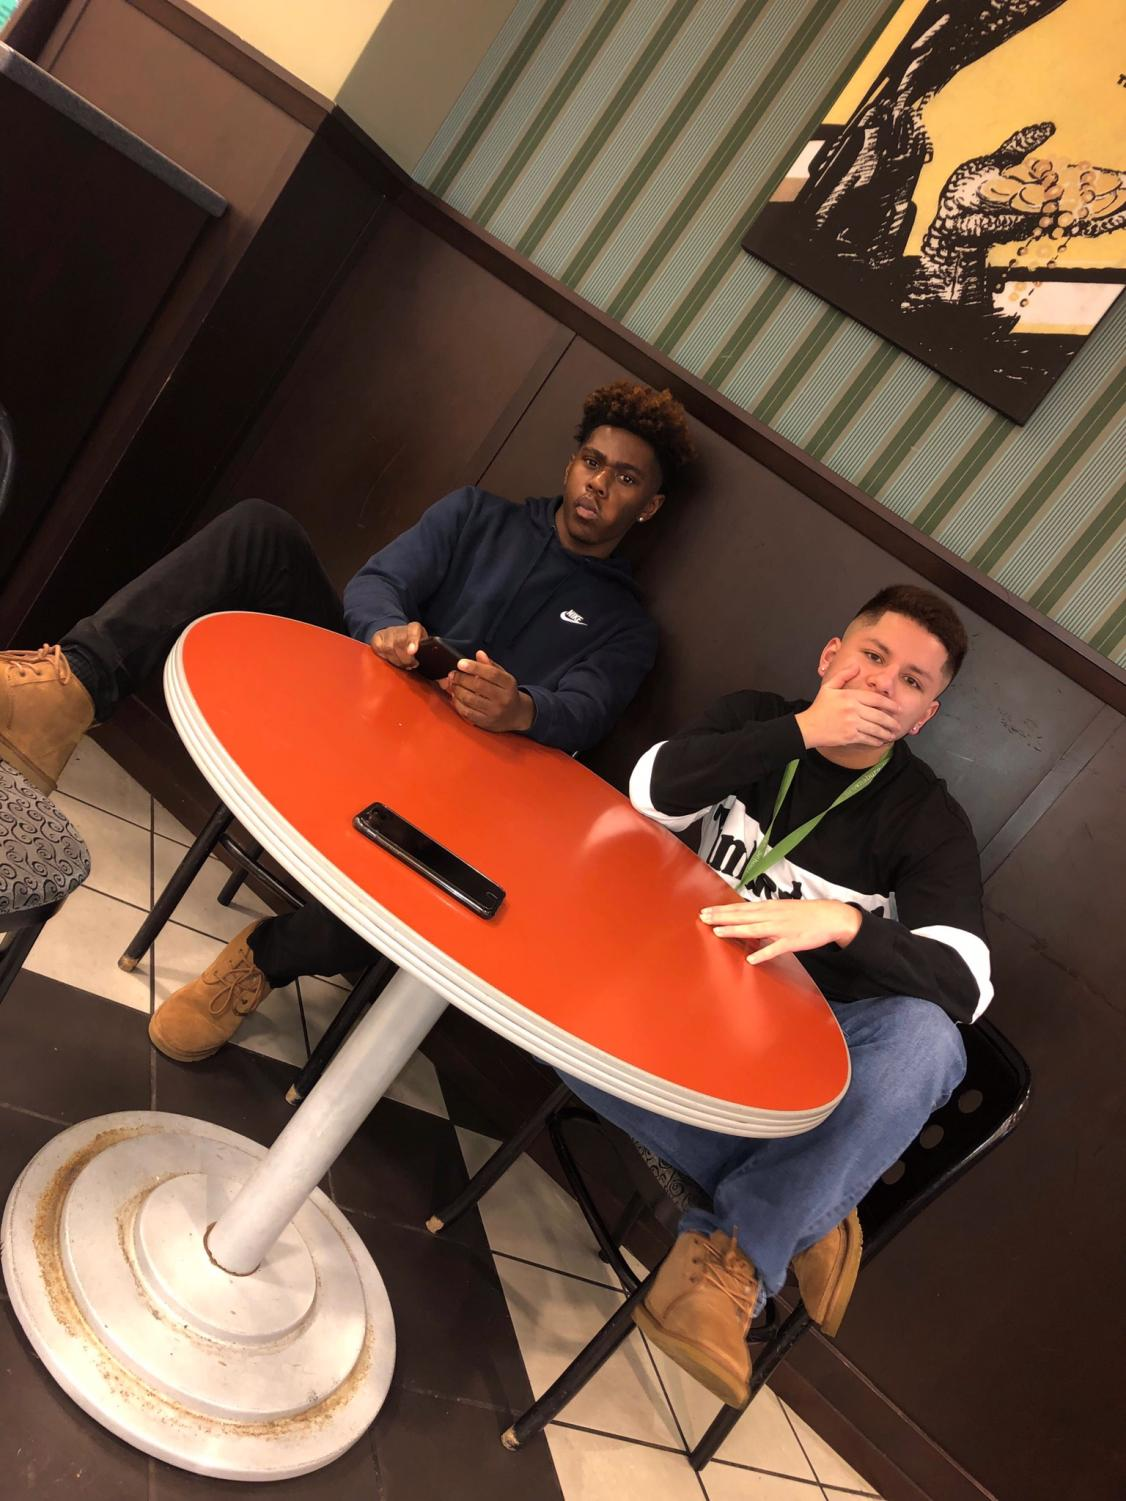 Senior Halim Tienda (right) sits with a friend.